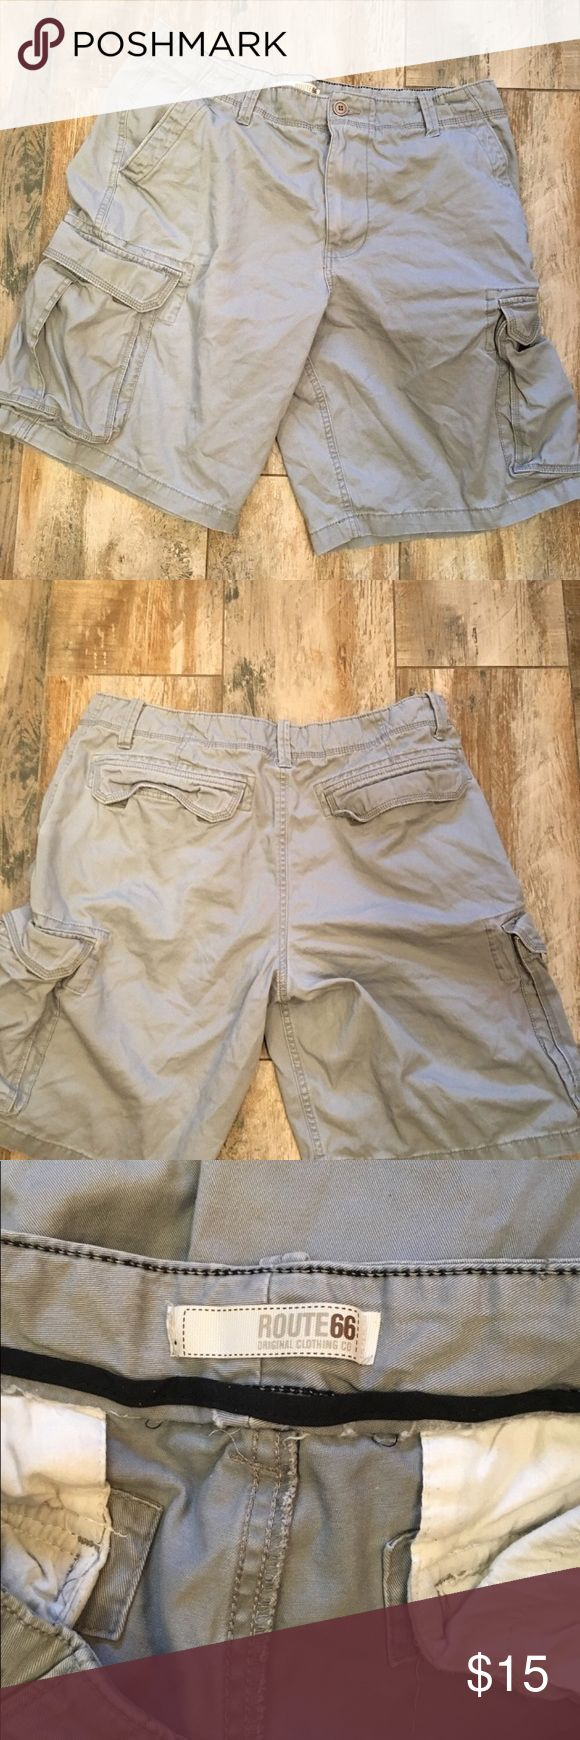 Great pair of men's casual shorts Great cargo shorts. In good used condition. Note some fraying at the bottom. Route 66 Shorts Cargo